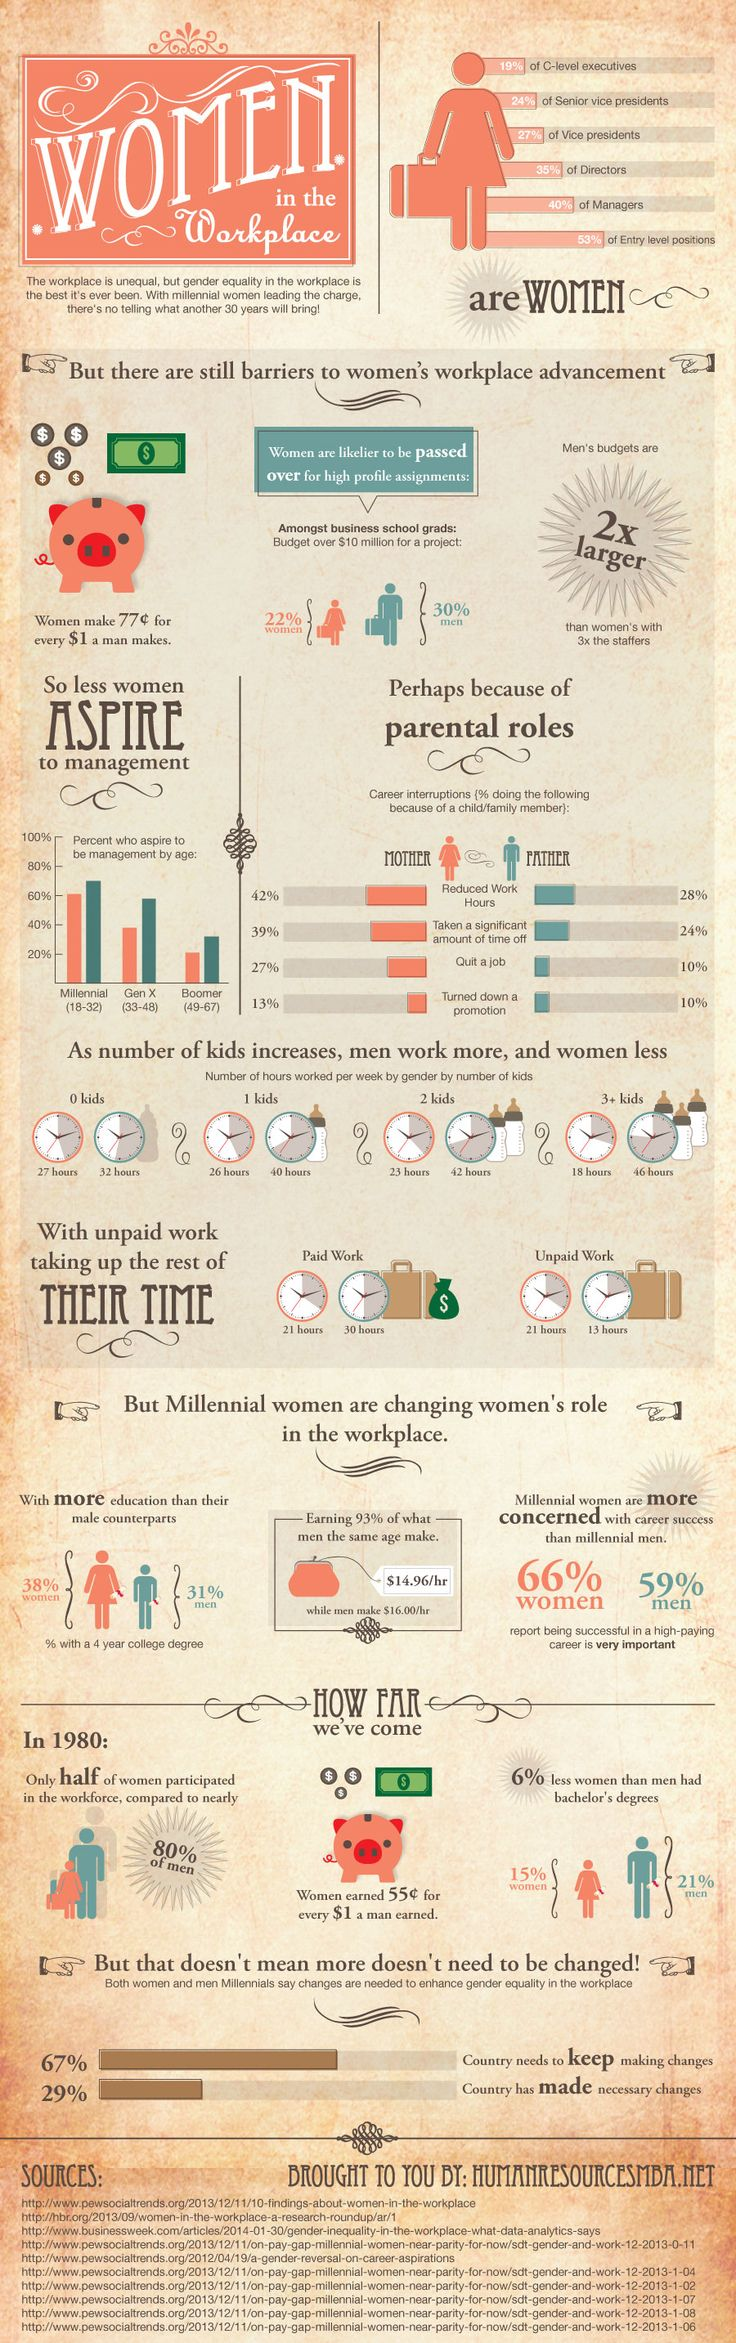 best images about will you be my mentor tips from mypath women in the workplace then vs now infographic